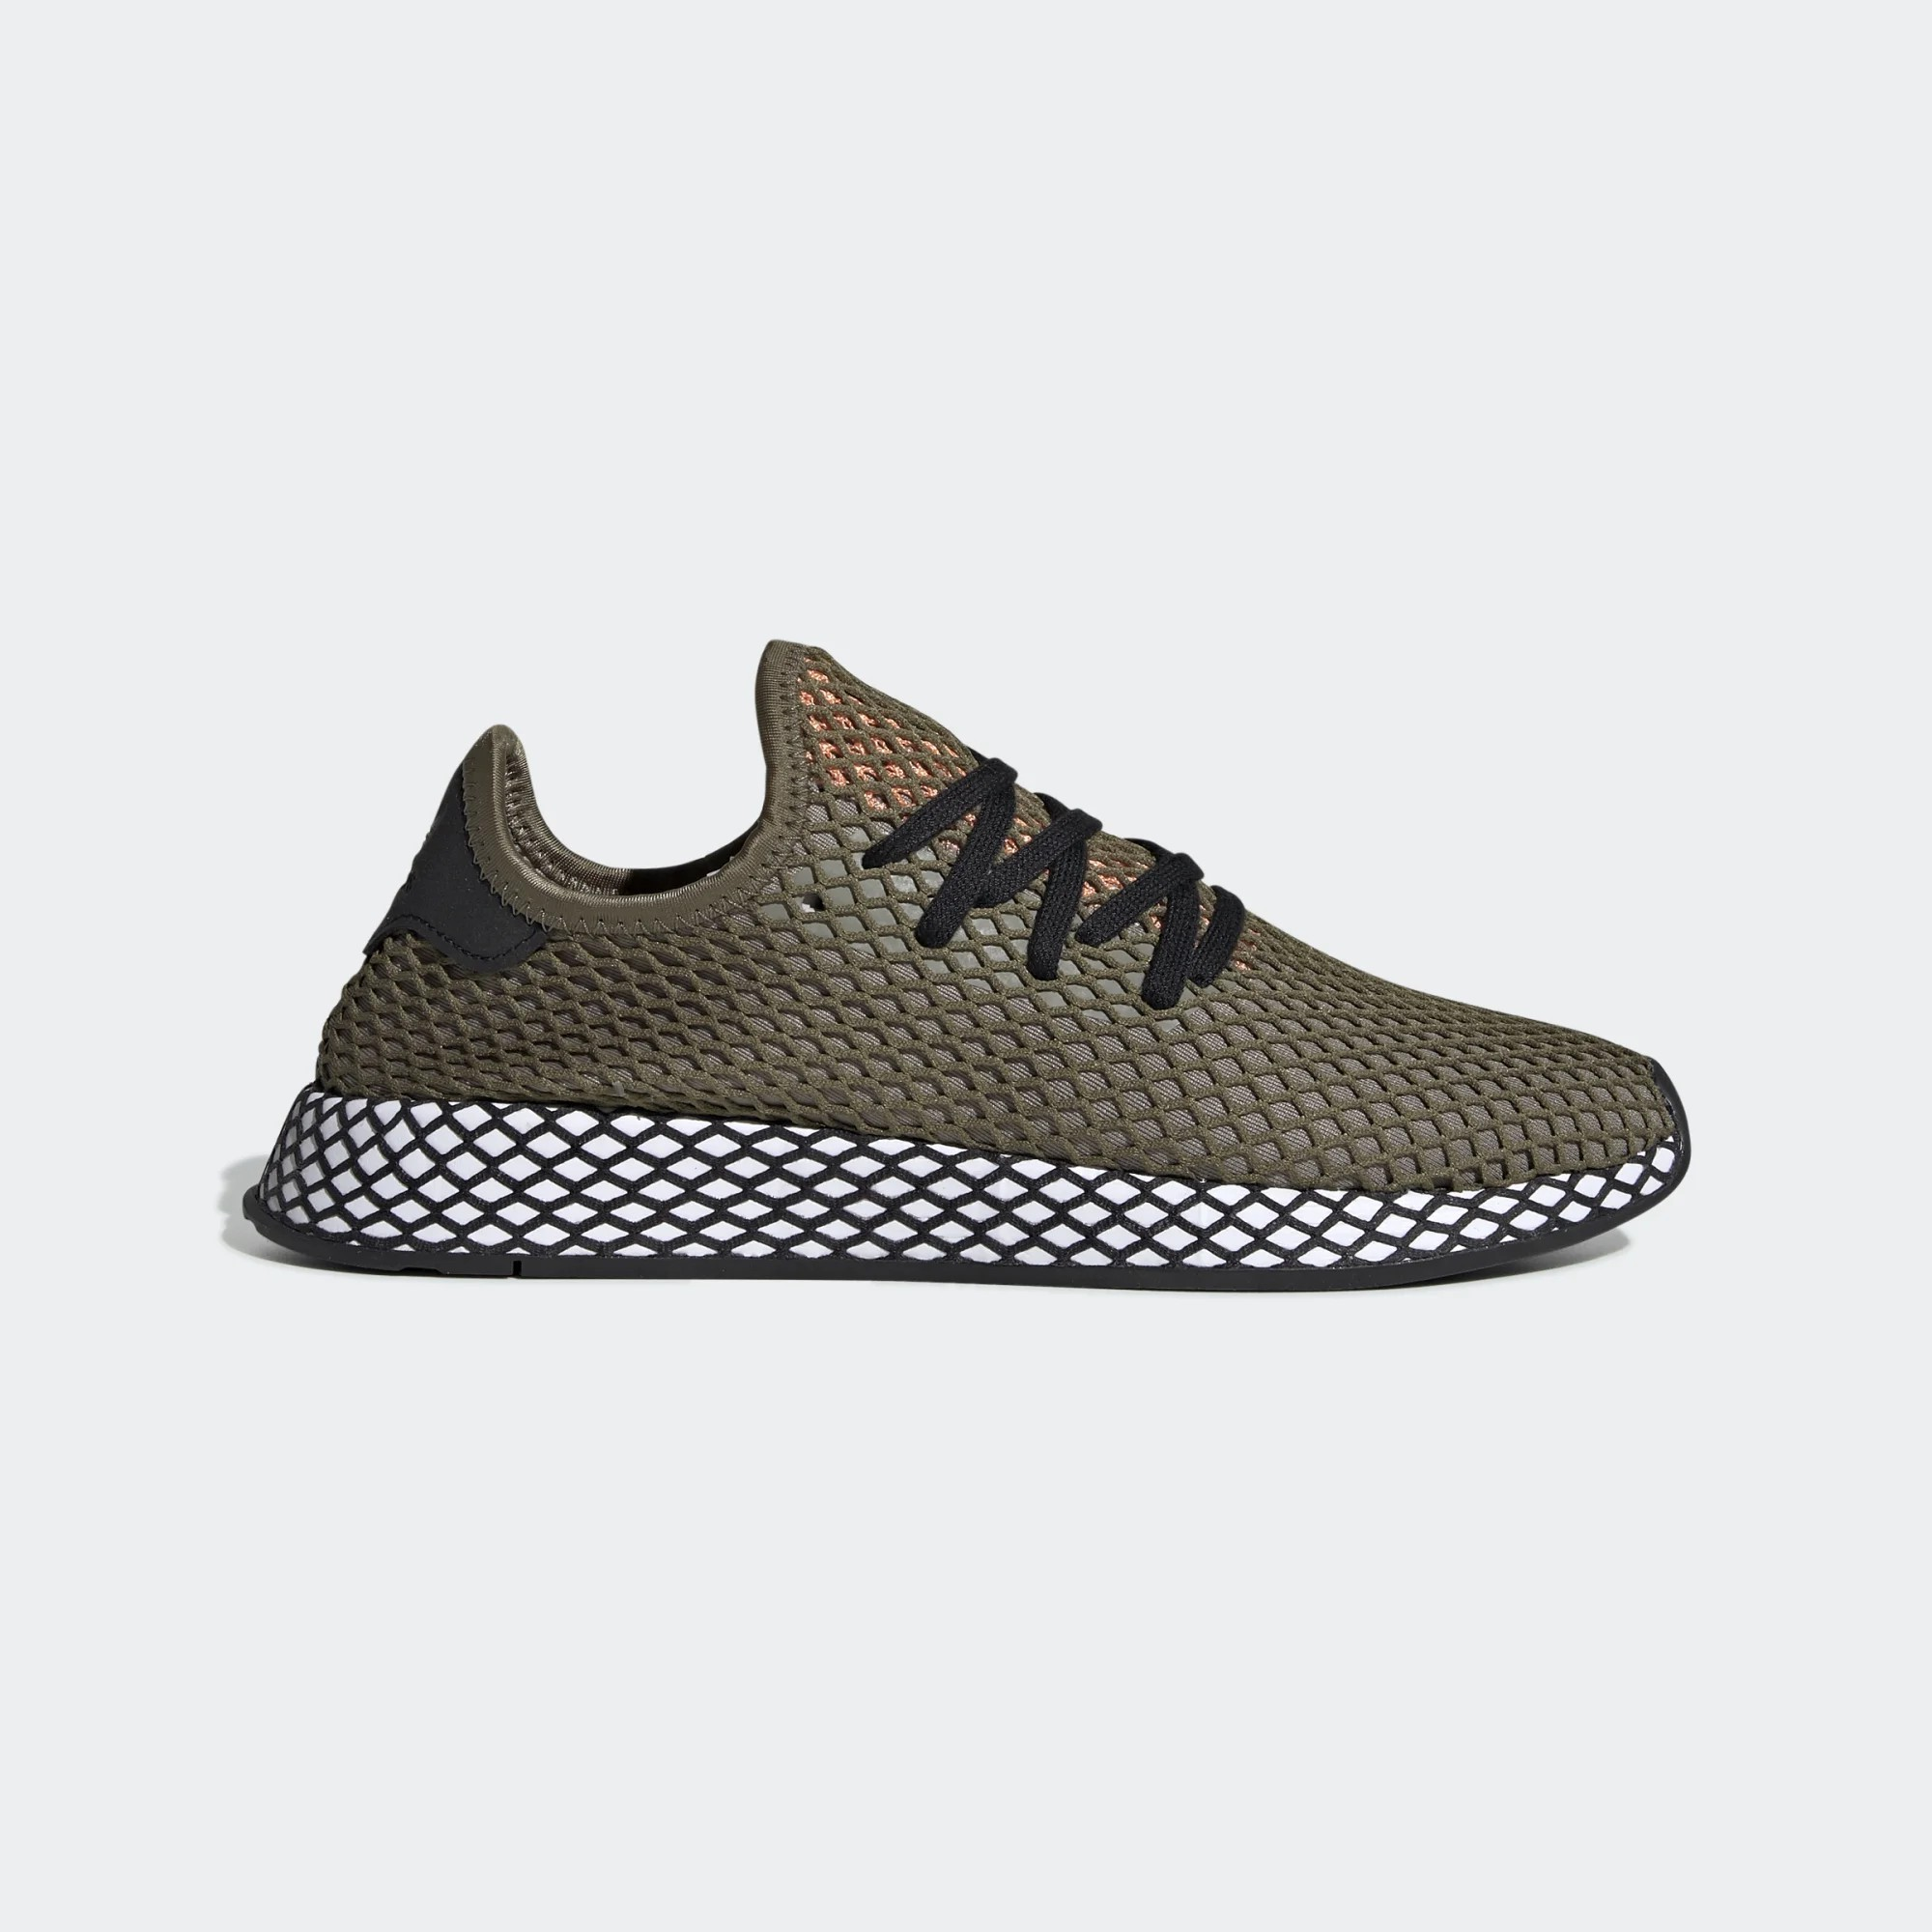 Adidas Originals Deerupt Runner Green BD7894